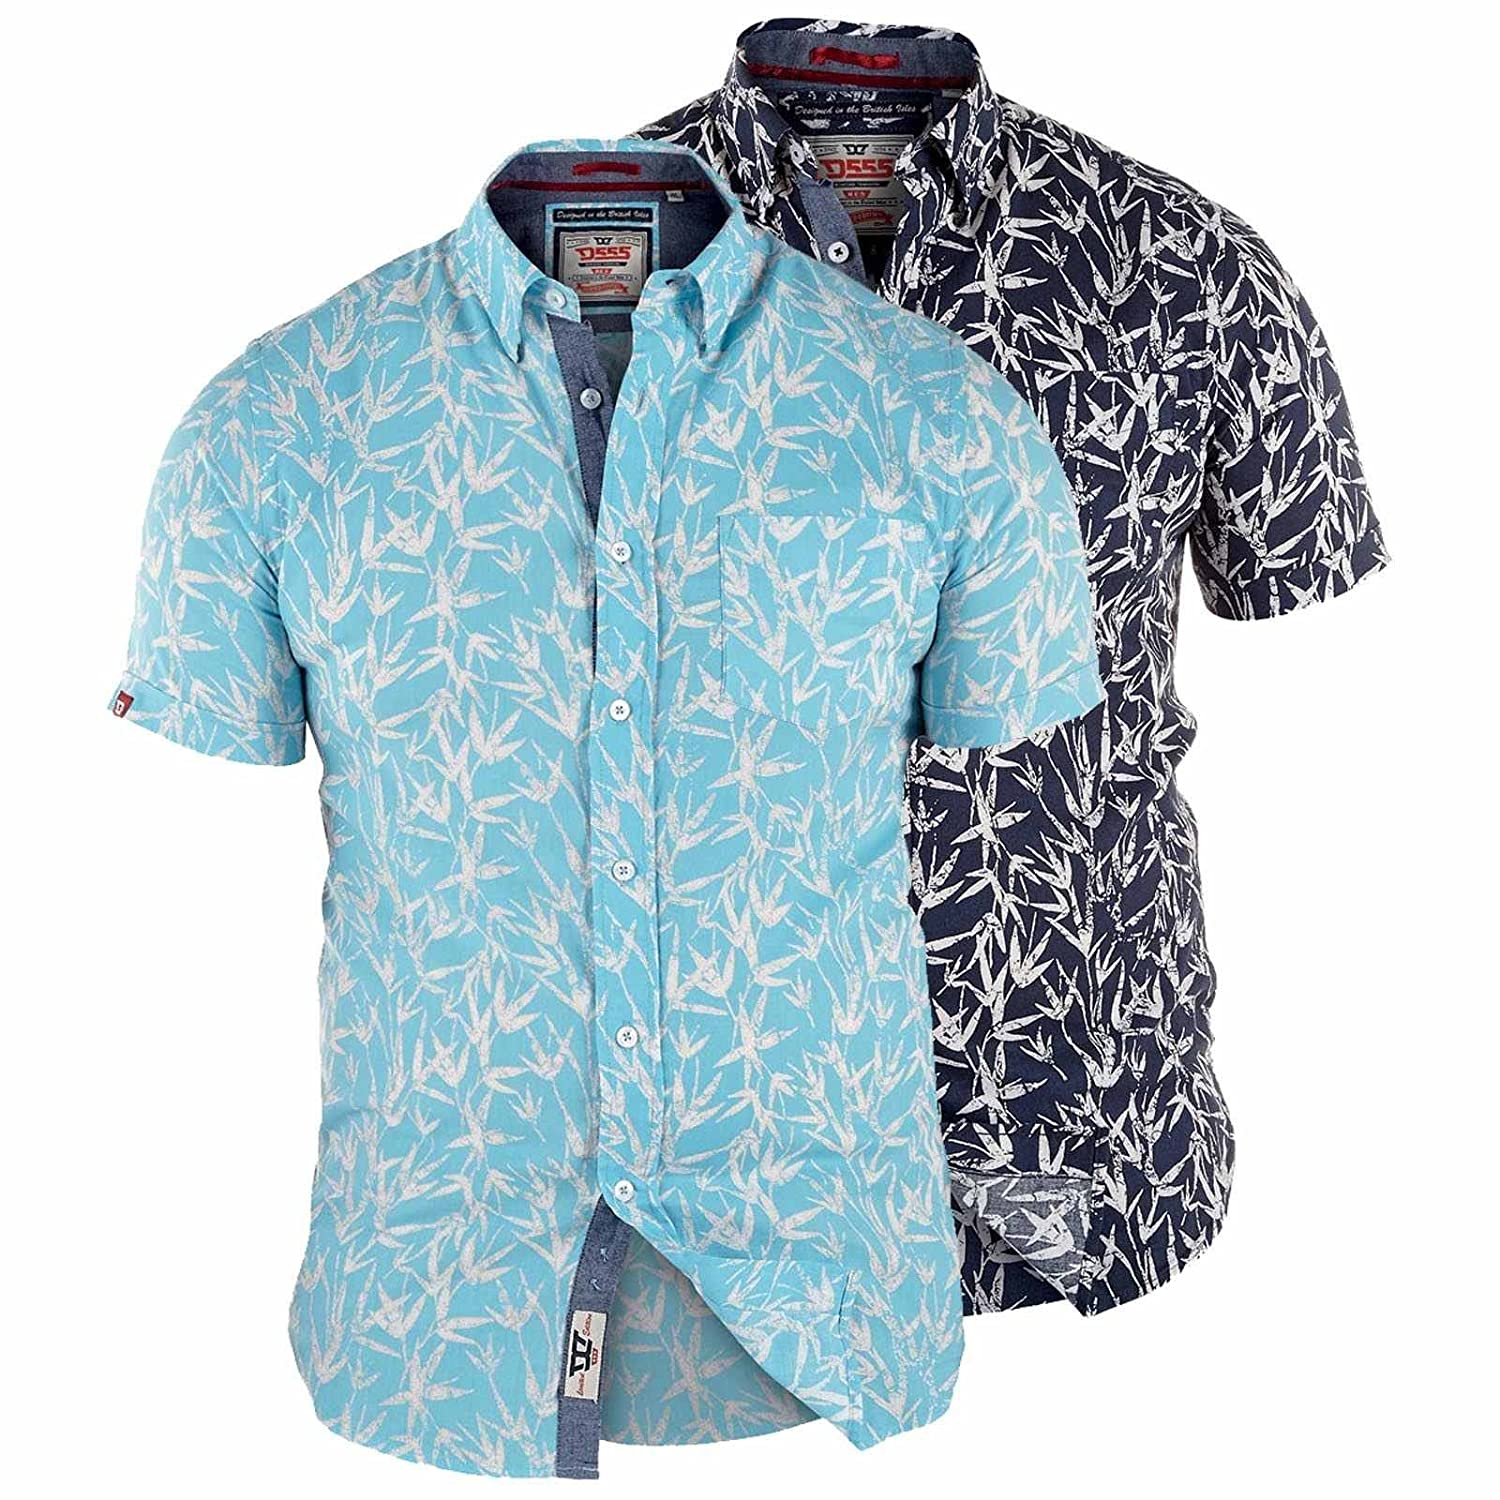 Mens D555 Kingsize Mens Hawaiian Leaf Print Short Sleeve Shirt 3XL 4XL 5XL 6XL